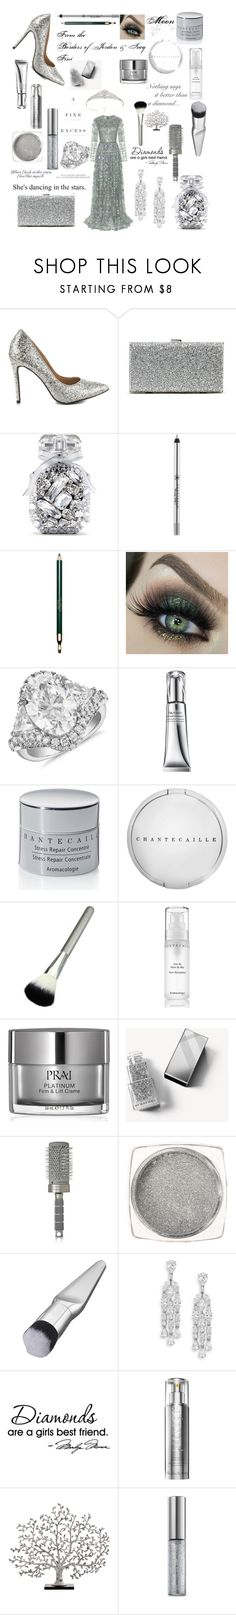 """The shining star"" by fini-i ❤ liked on Polyvore featuring Penny Loves Kenny, Sole Society, Victoria's Secret, Anastasia Beverly Hills, Clarins, Blue Nile, Shiseido, Chantecaille, Burberry and T3"